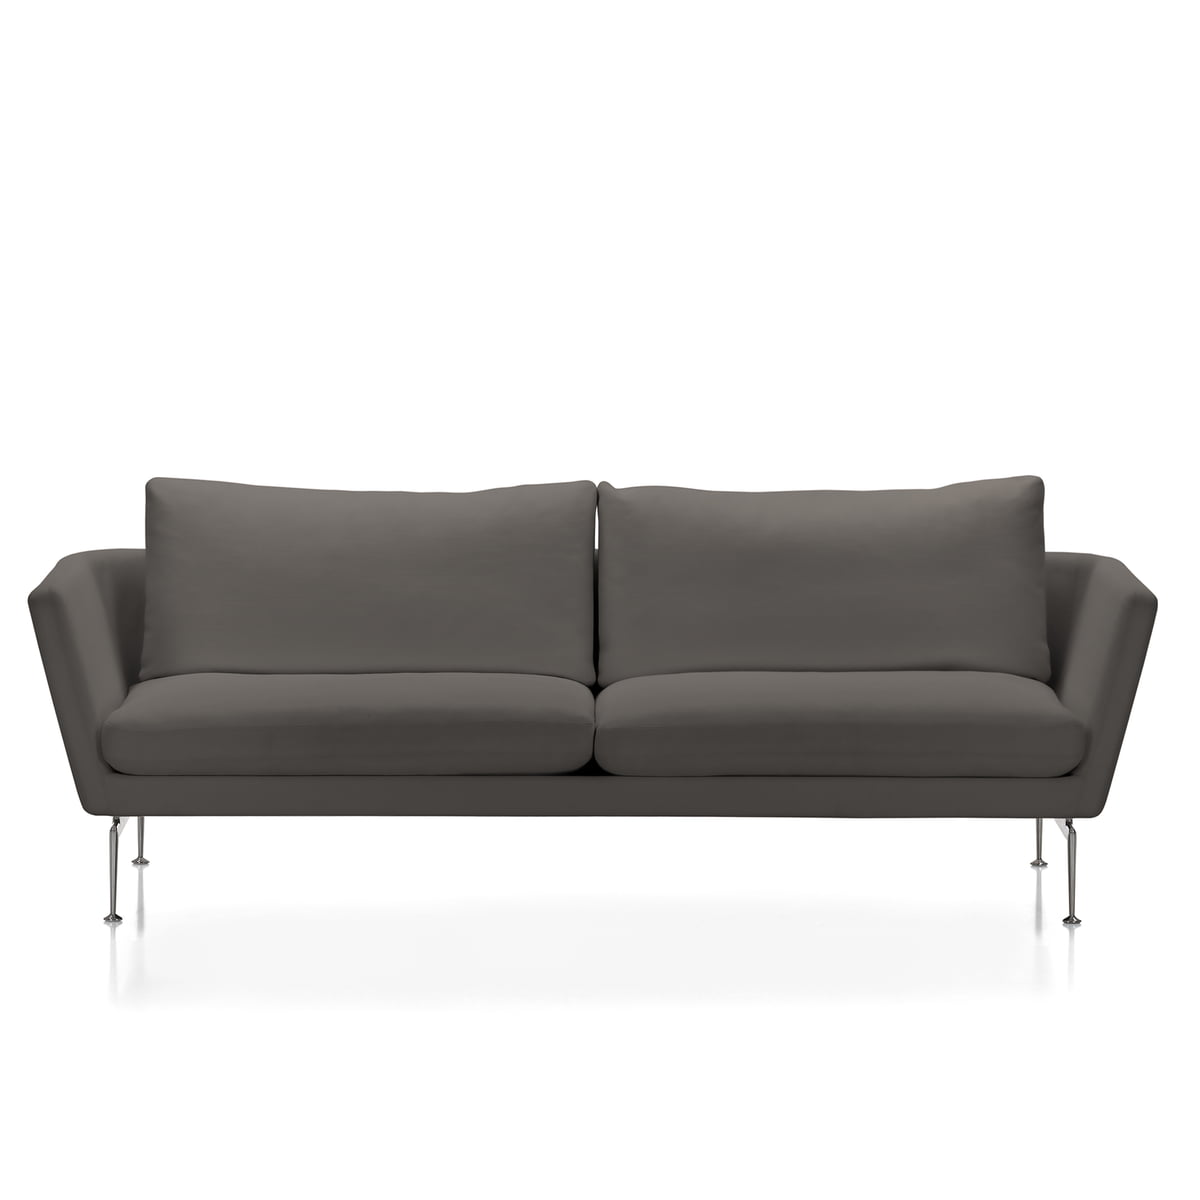 vitra suita sofa 3 sitzer classic weich bezug dumet sand anthrazit untergestell. Black Bedroom Furniture Sets. Home Design Ideas